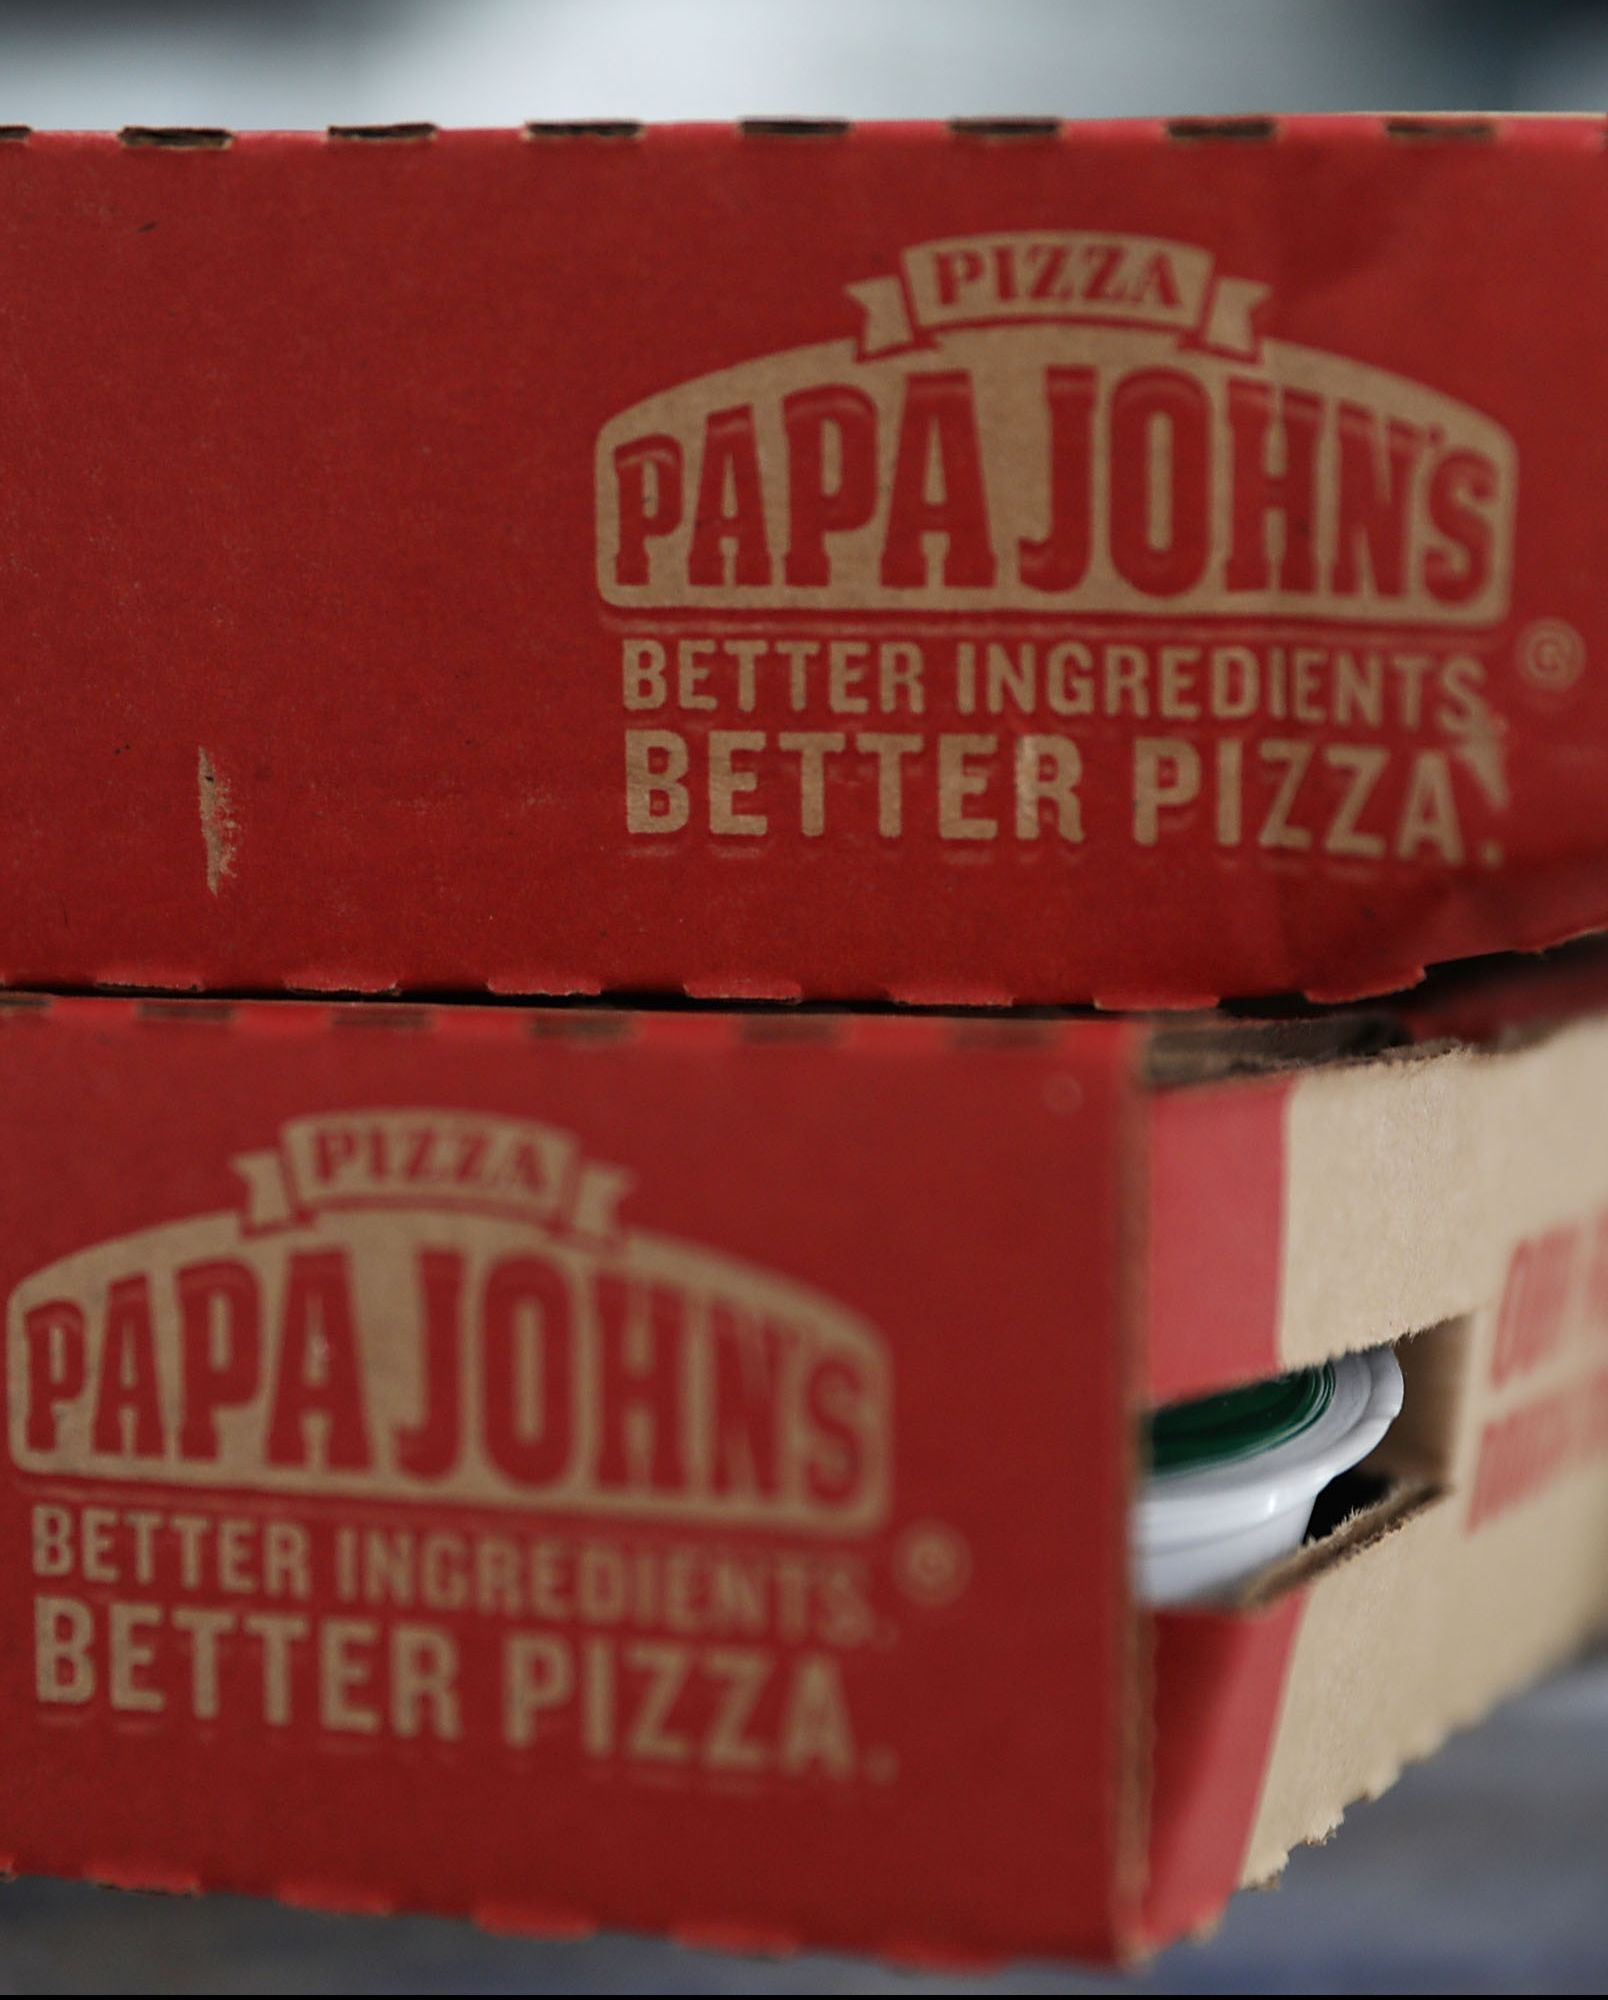 Papa John's Announced It's Giving More Than 20,000 Employees Free College Tuition